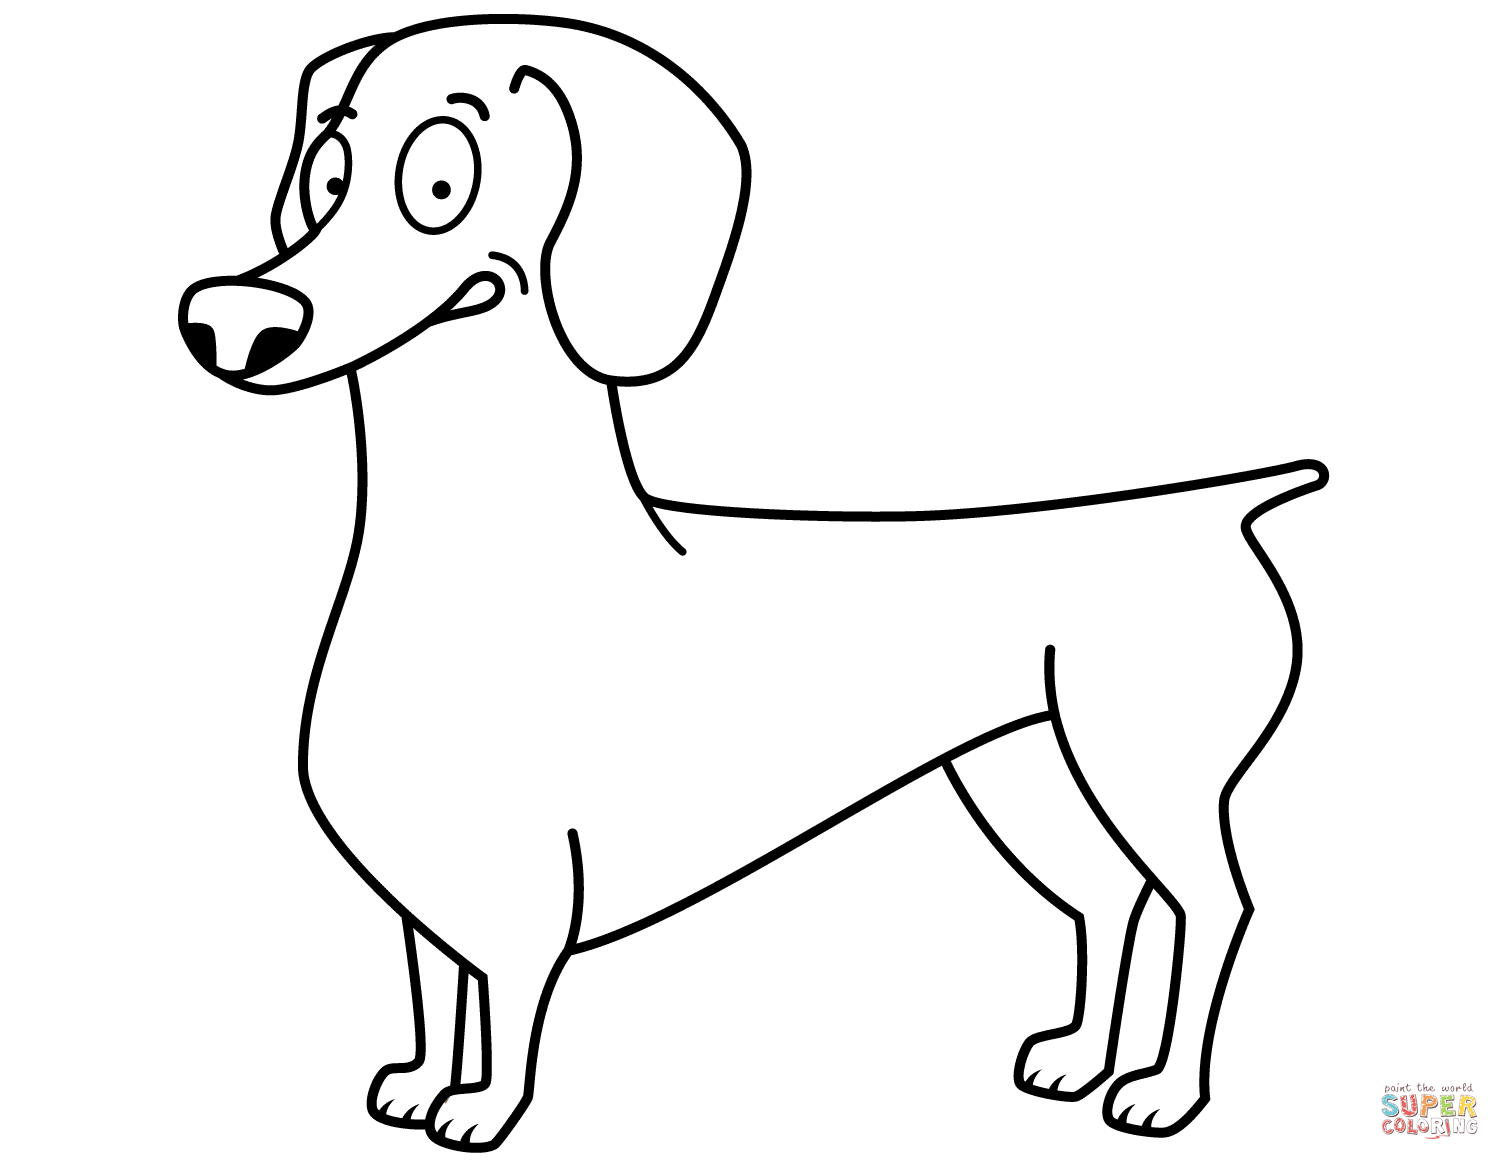 dachshund coloring pictures dachshund coloring pages pictures dachshund coloring